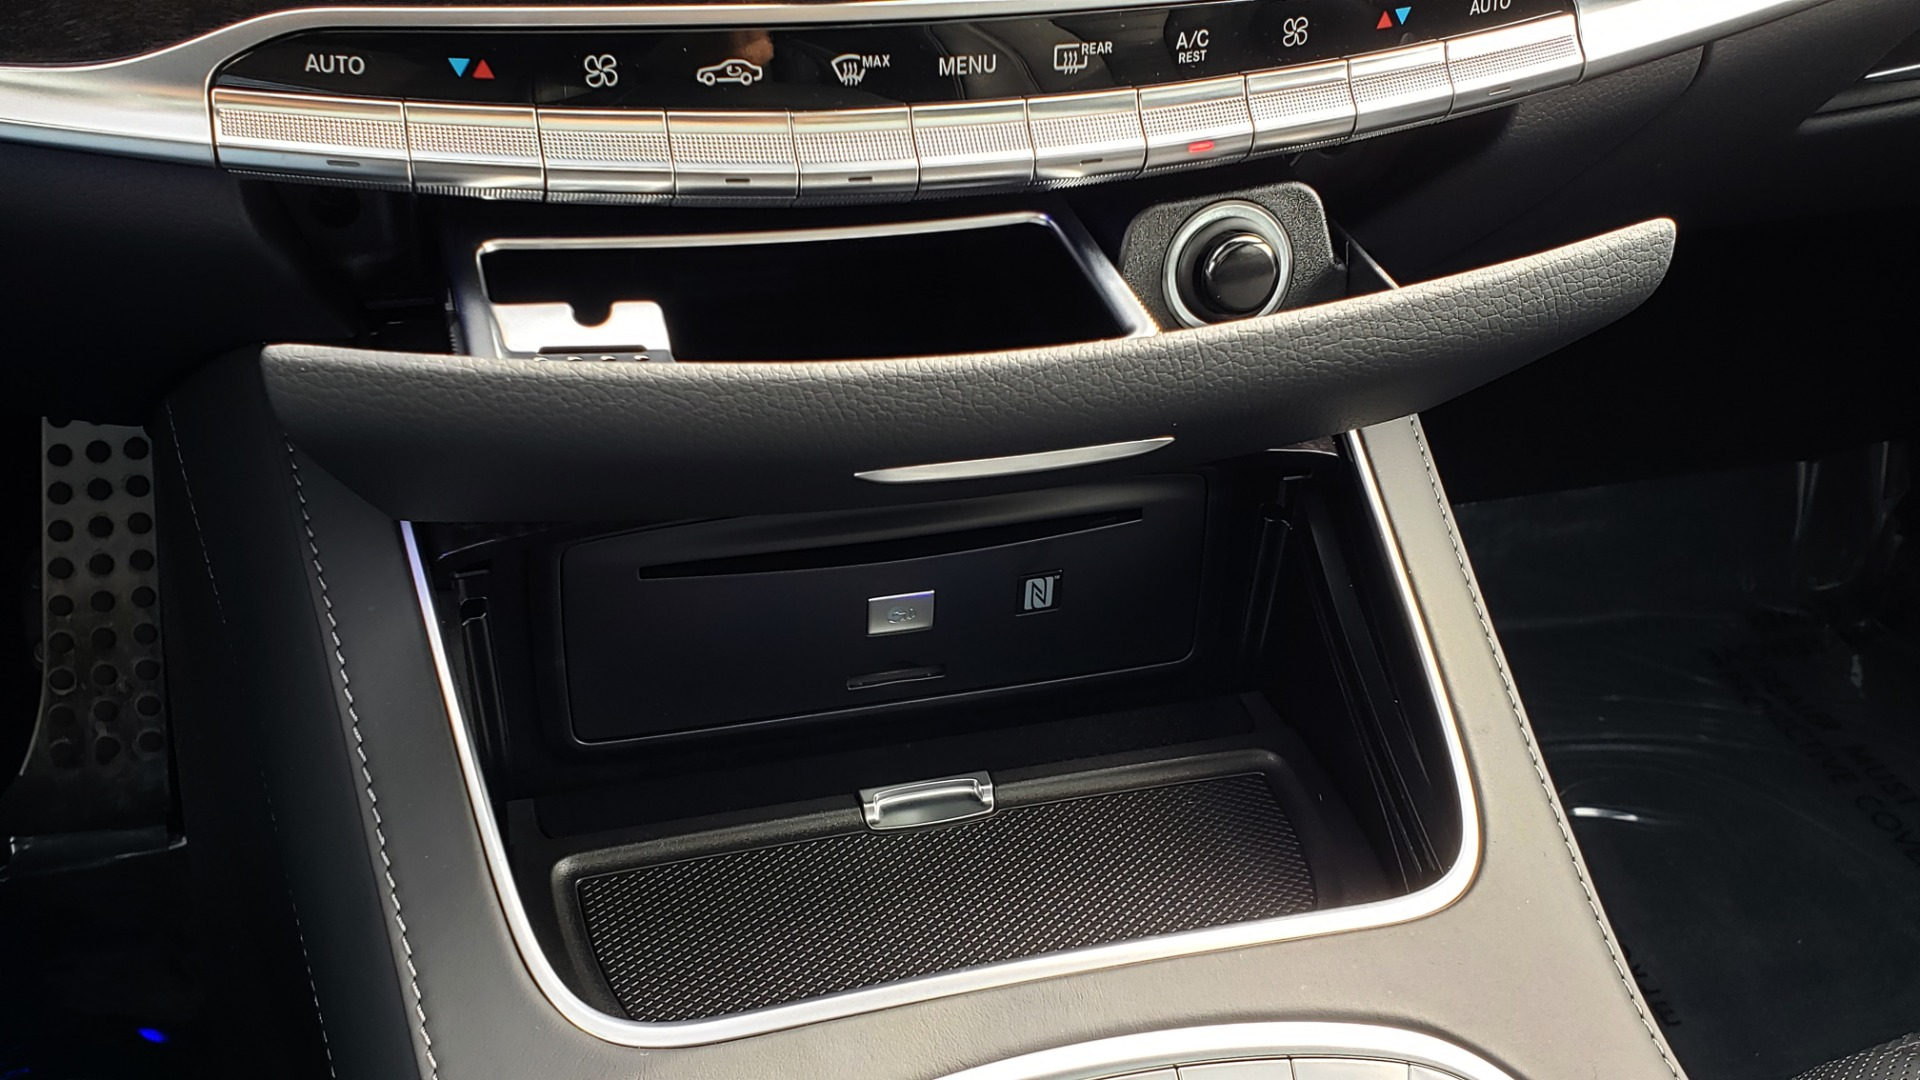 Used 2017 Mercedes-Benz S-CLASS S 550 4MATIC SPORT / PREM PKG / WARMTH & COMFORT / KEYLESS-GO for sale Sold at Formula Imports in Charlotte NC 28227 54